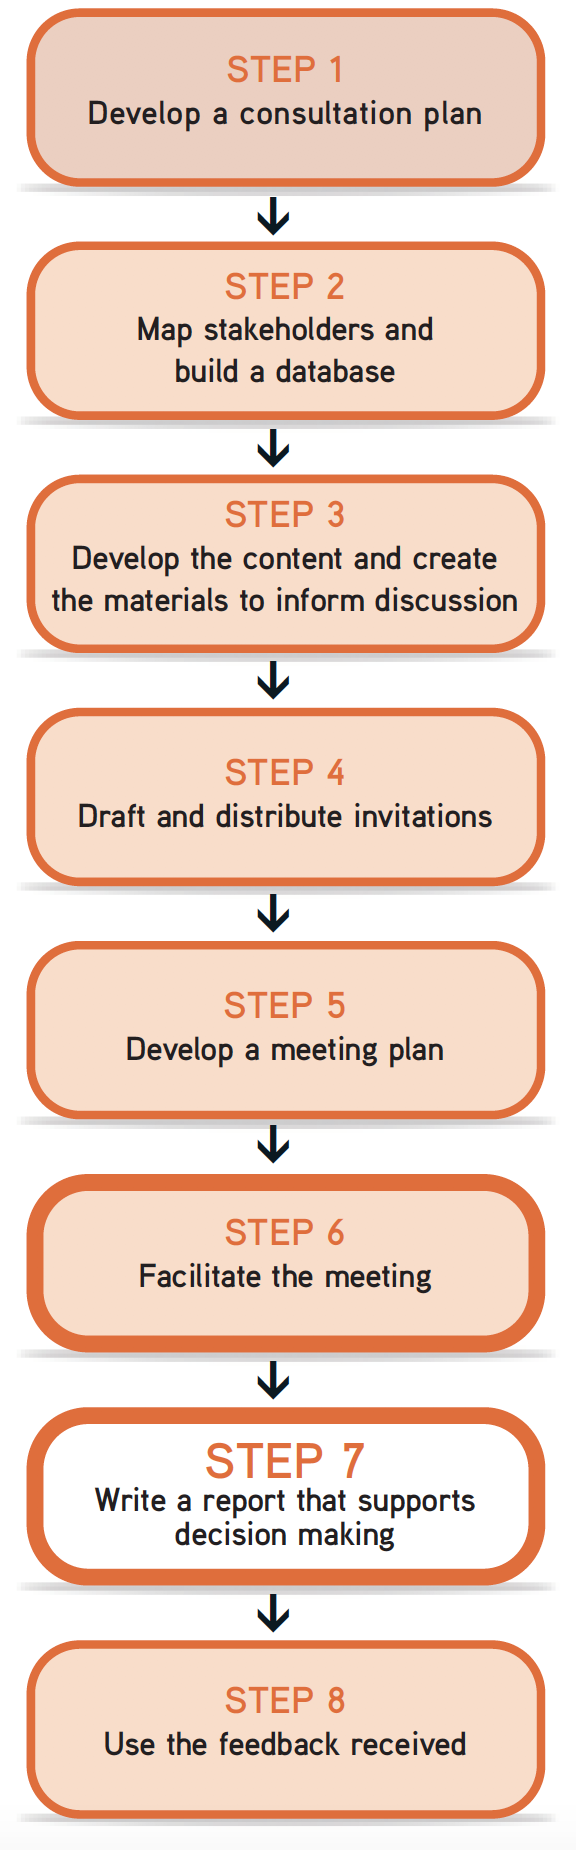 "Picture of steps flow chart, with Step 7 ""write a report that supports decision making"" highlighted."